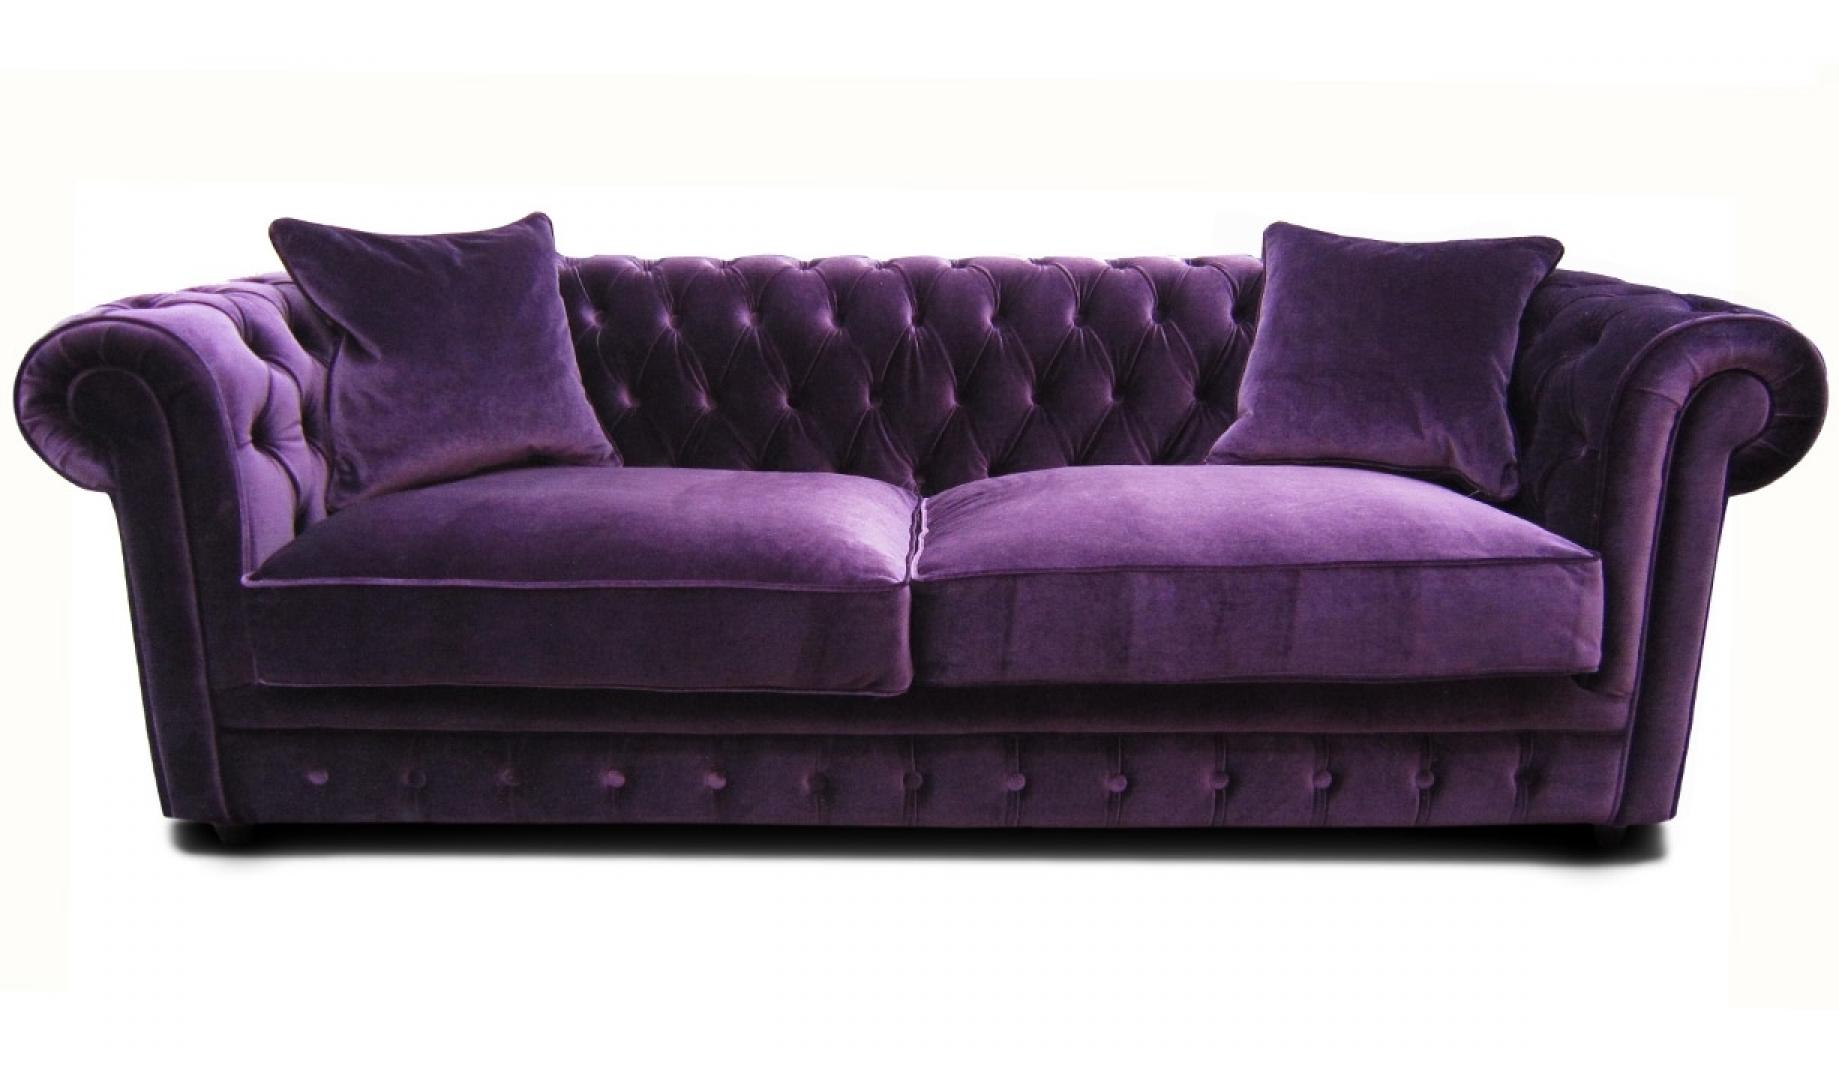 Canapés Chesterfield Canape Chesterfield En Tissu Pas Cher